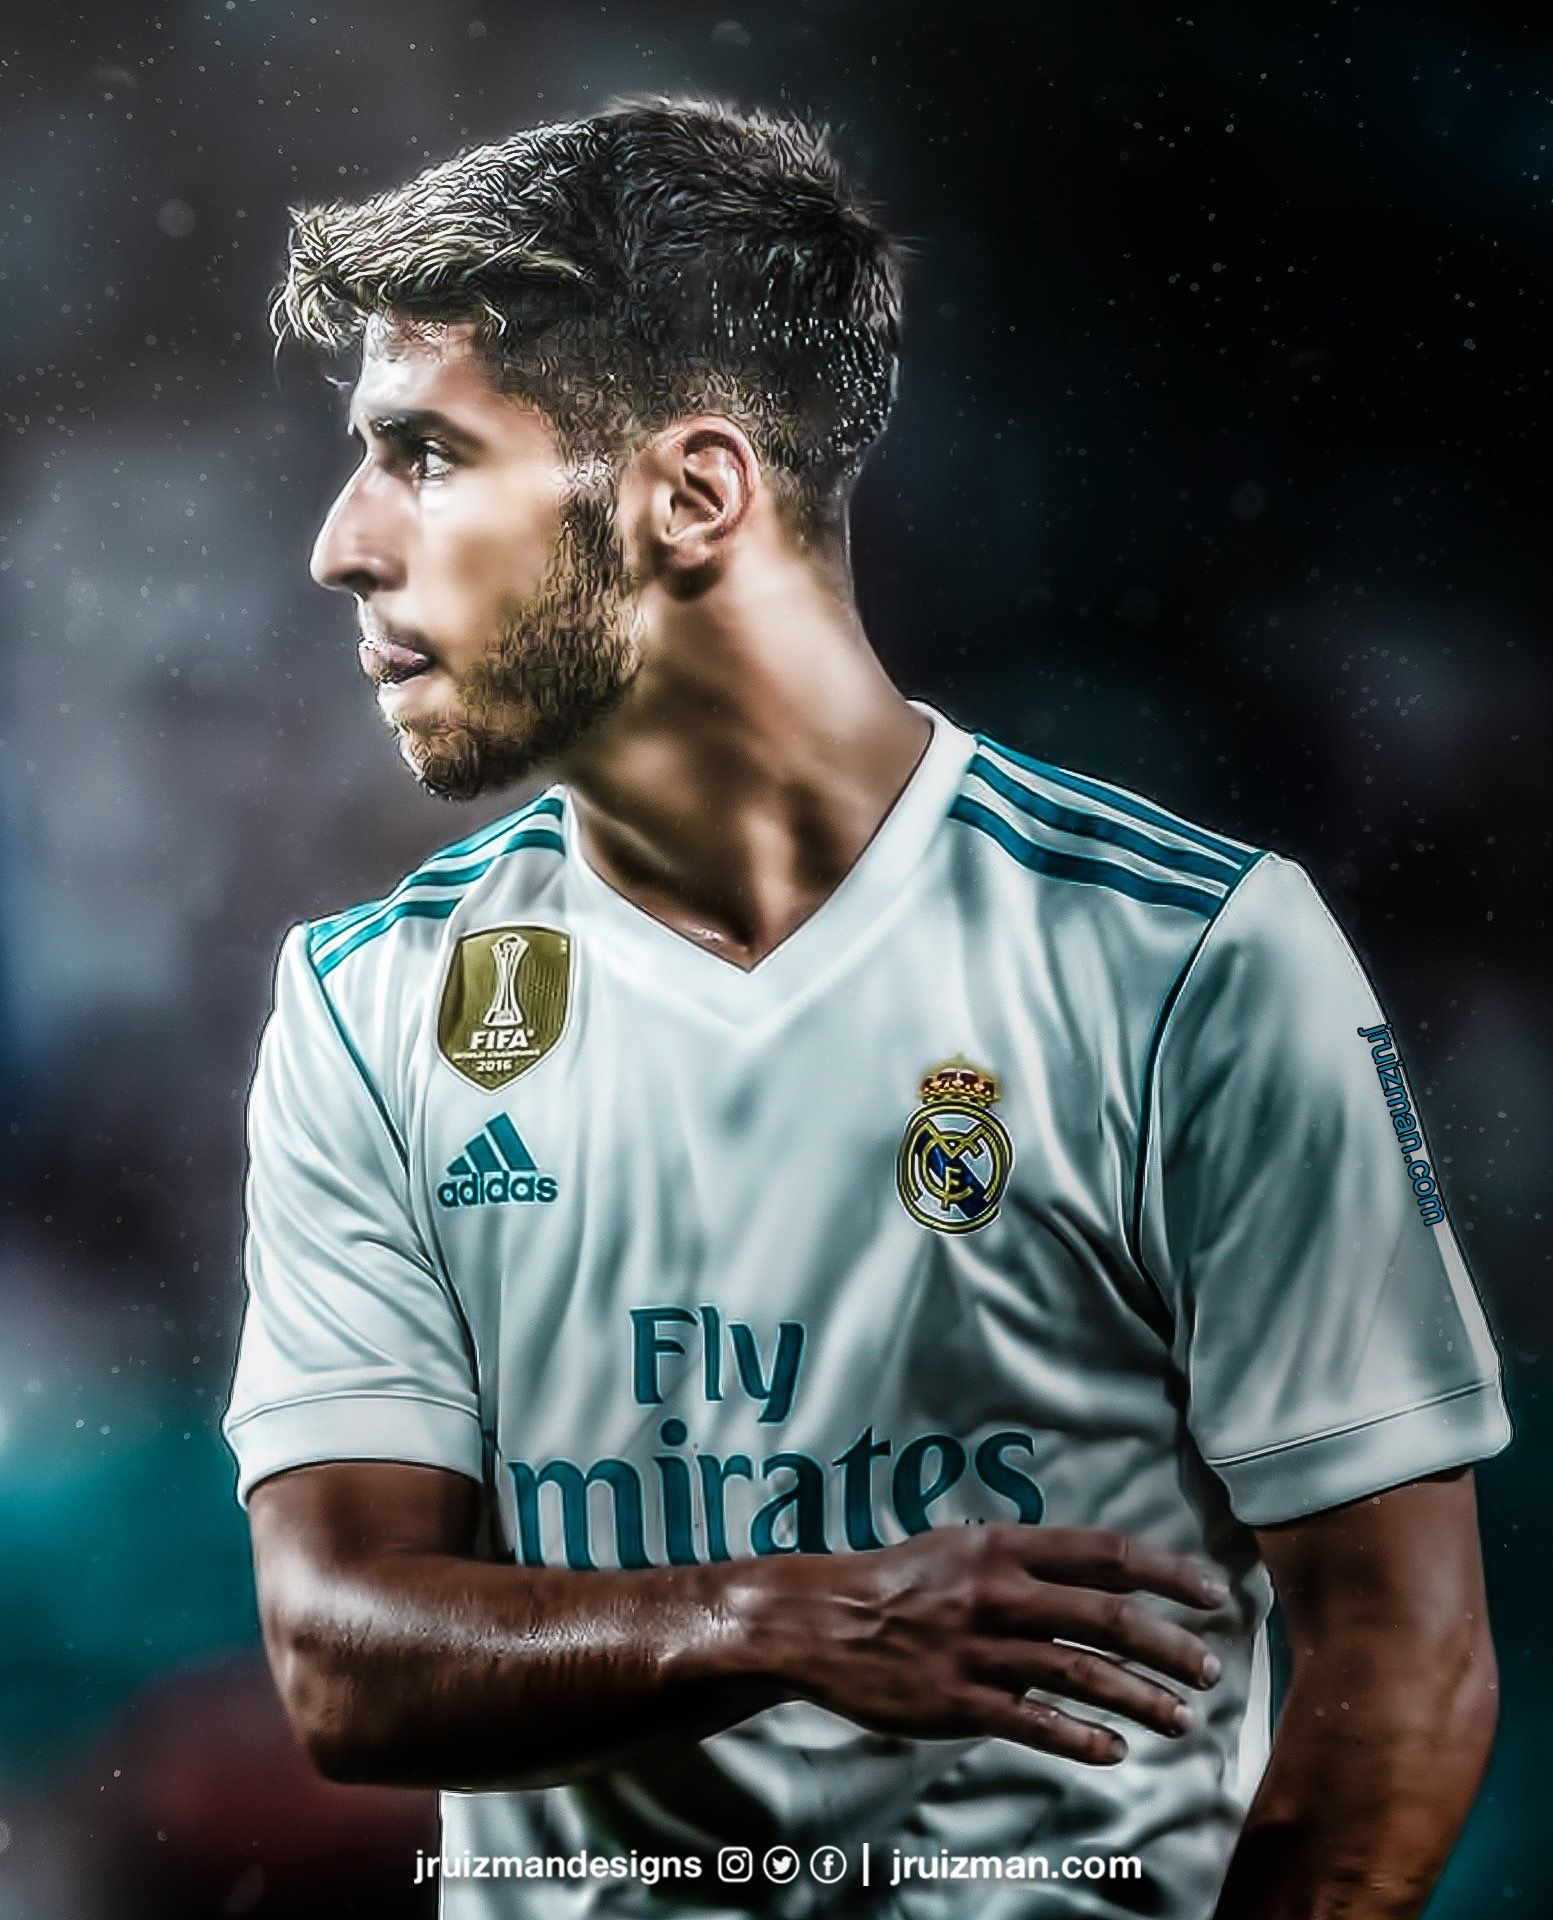 Left Foot Youngster Real Madrid Football Real Madrid Players Asensio